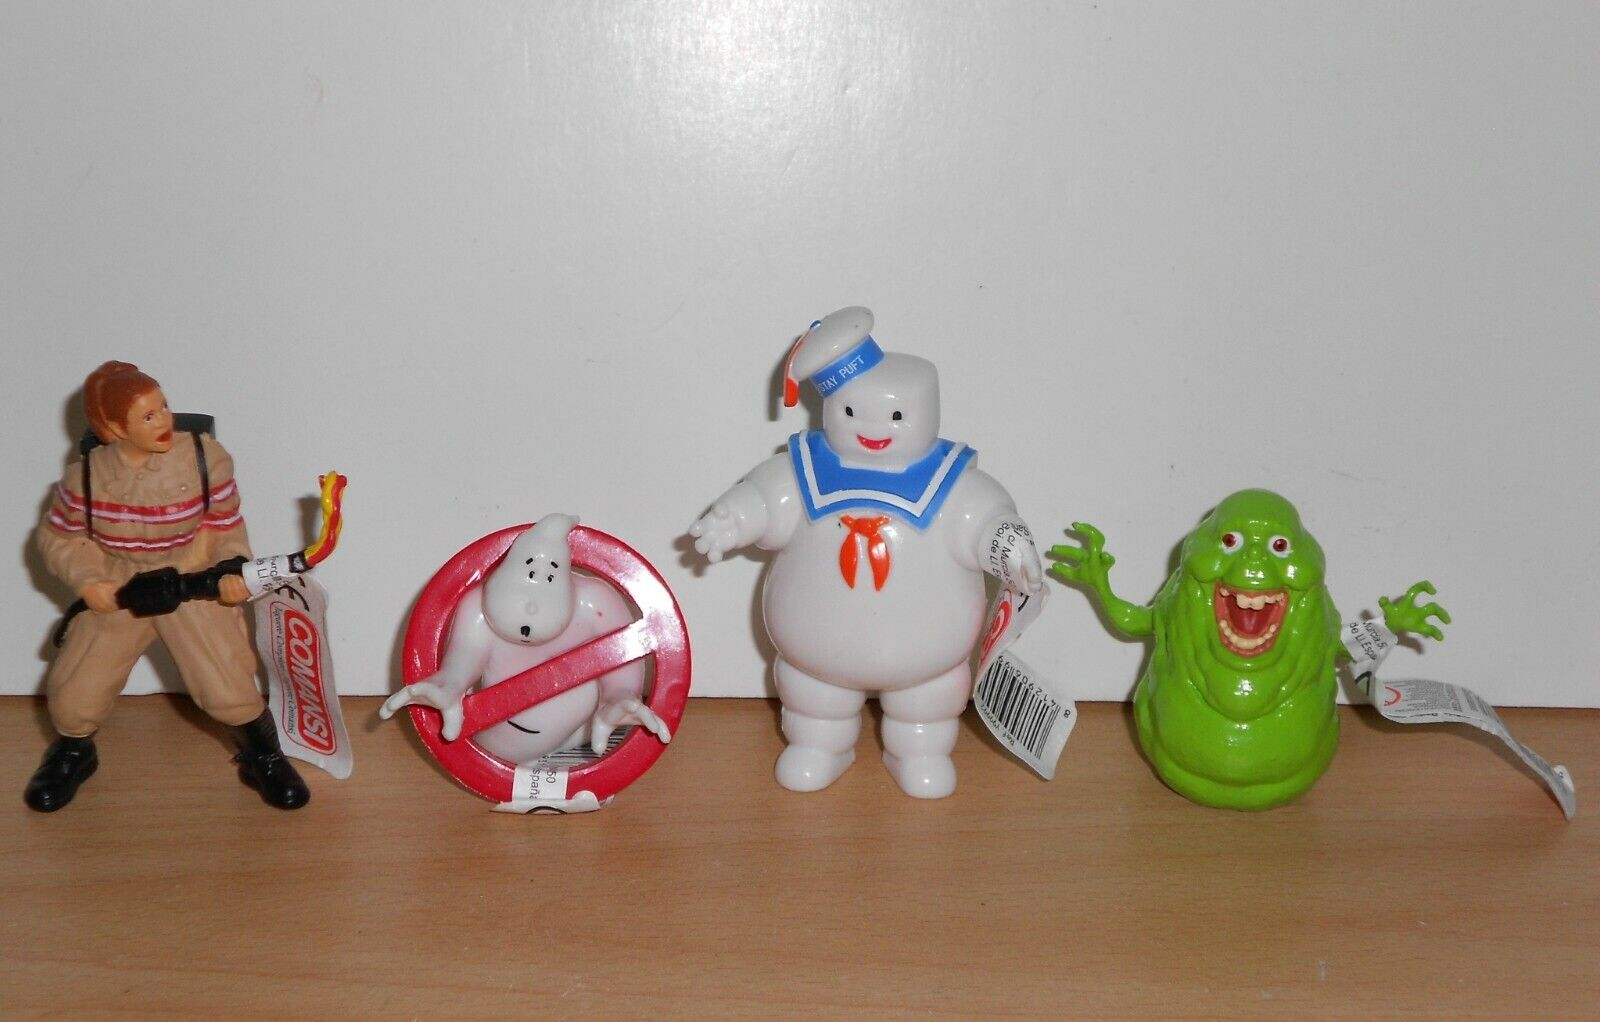 Complete Set - GHOSTBUSTERS ANSWER THE CALL - 4 PVC FIGURES Figurines